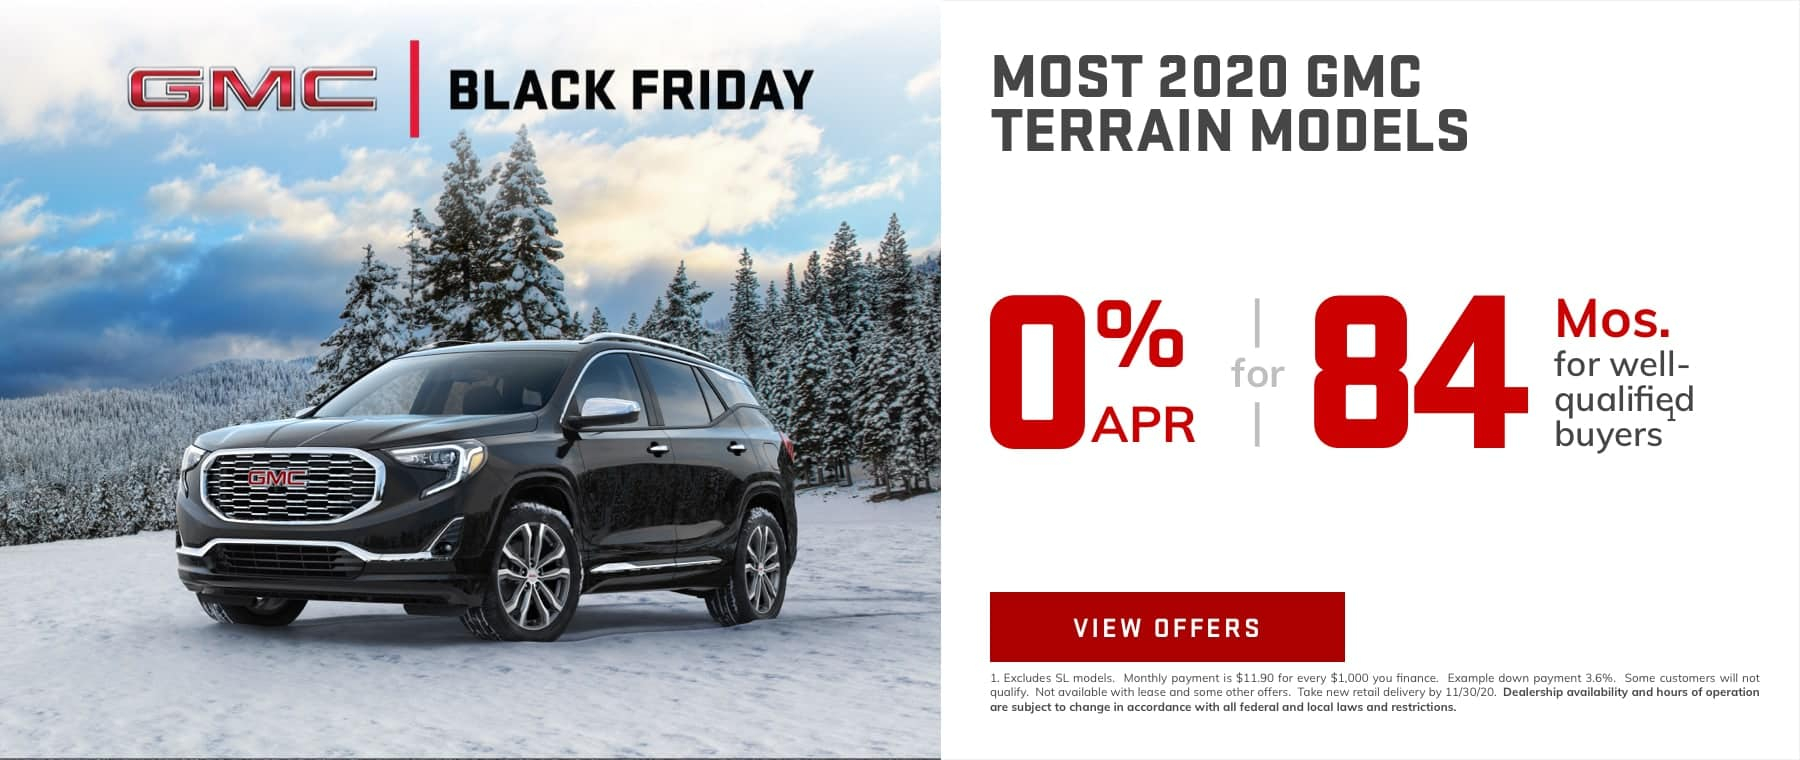 MOST 2020 GMC TERRAIN MODELS - 0% APR for 84 months for well-qualified buyers.1